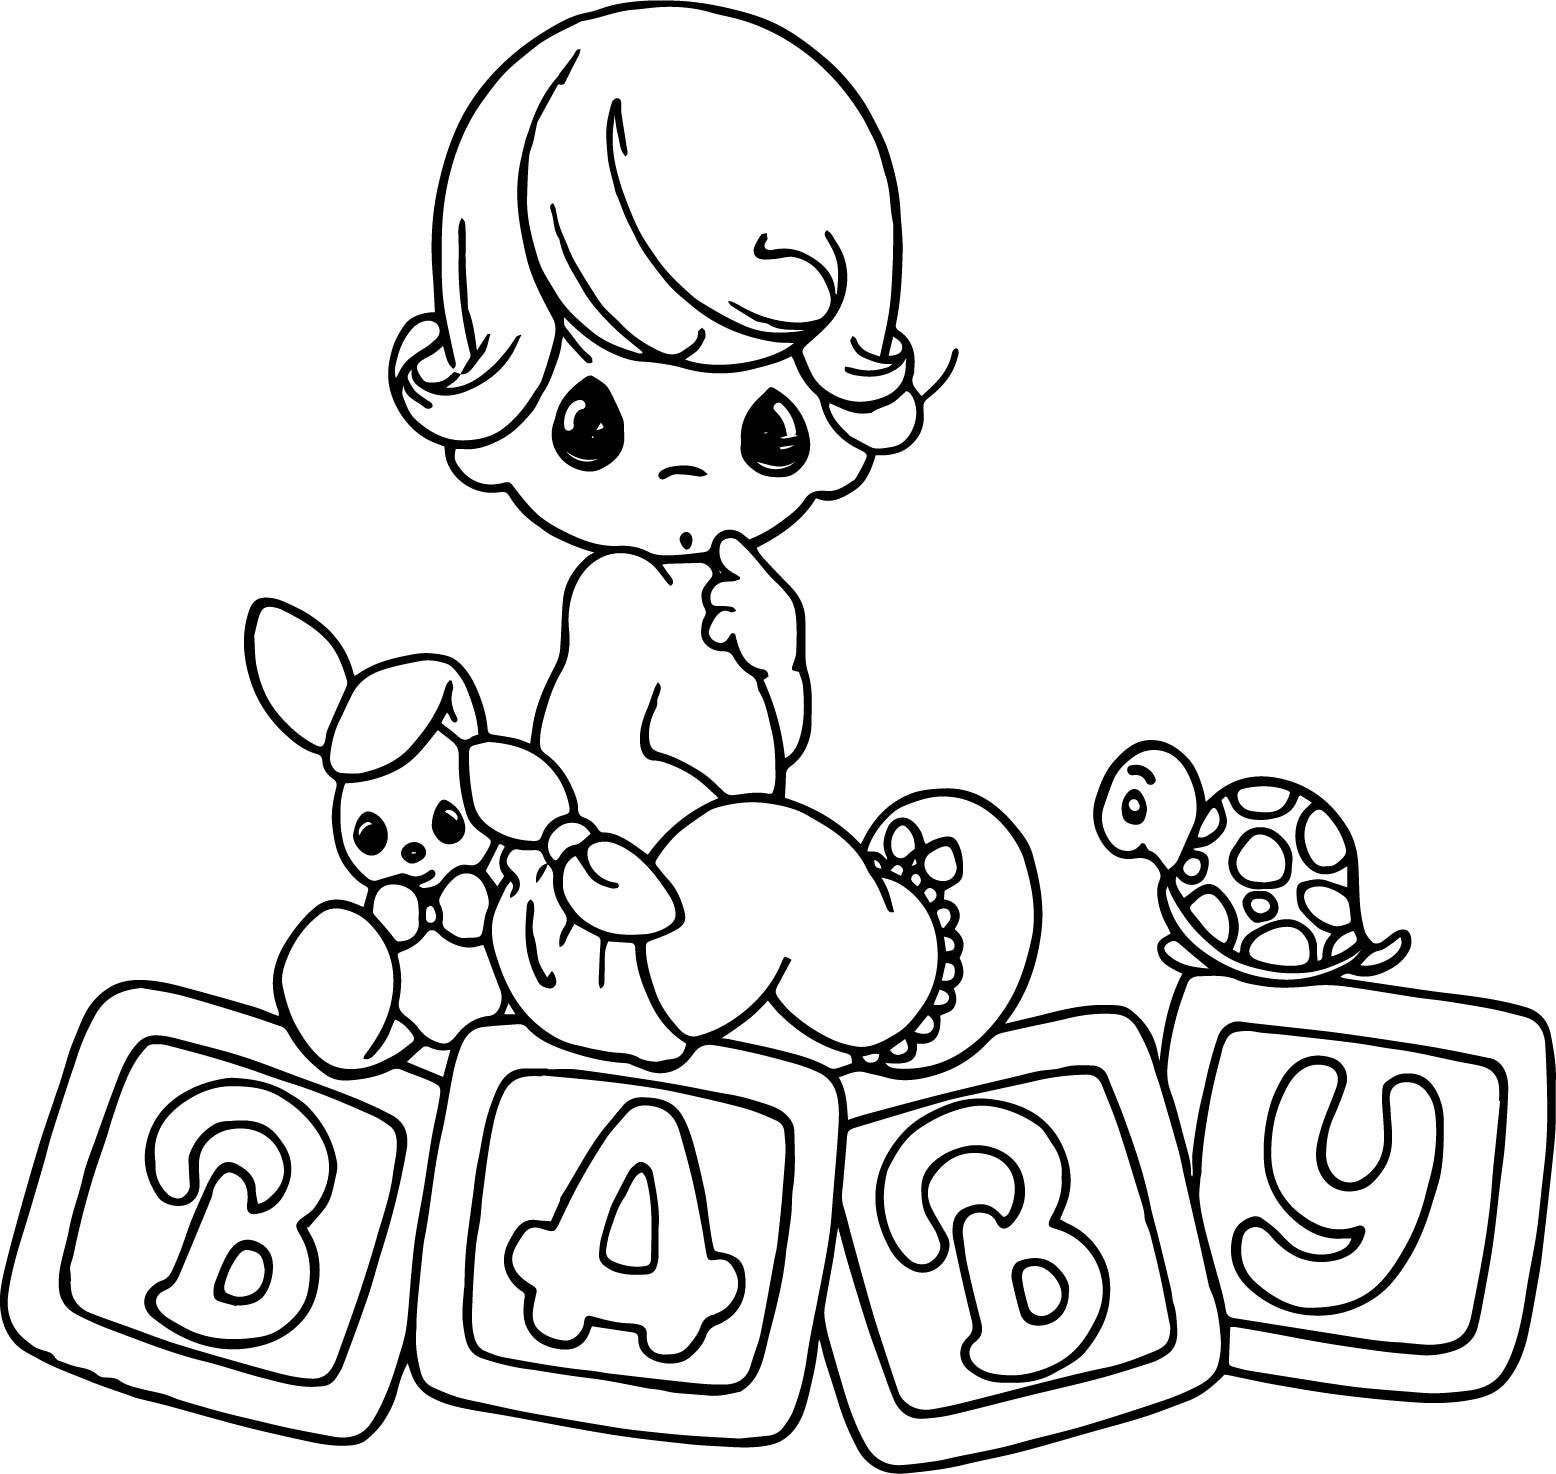 Free And Printable Coloring Page Precious Moments Coloring Pages Baby Coloring Pages Coloring Pages